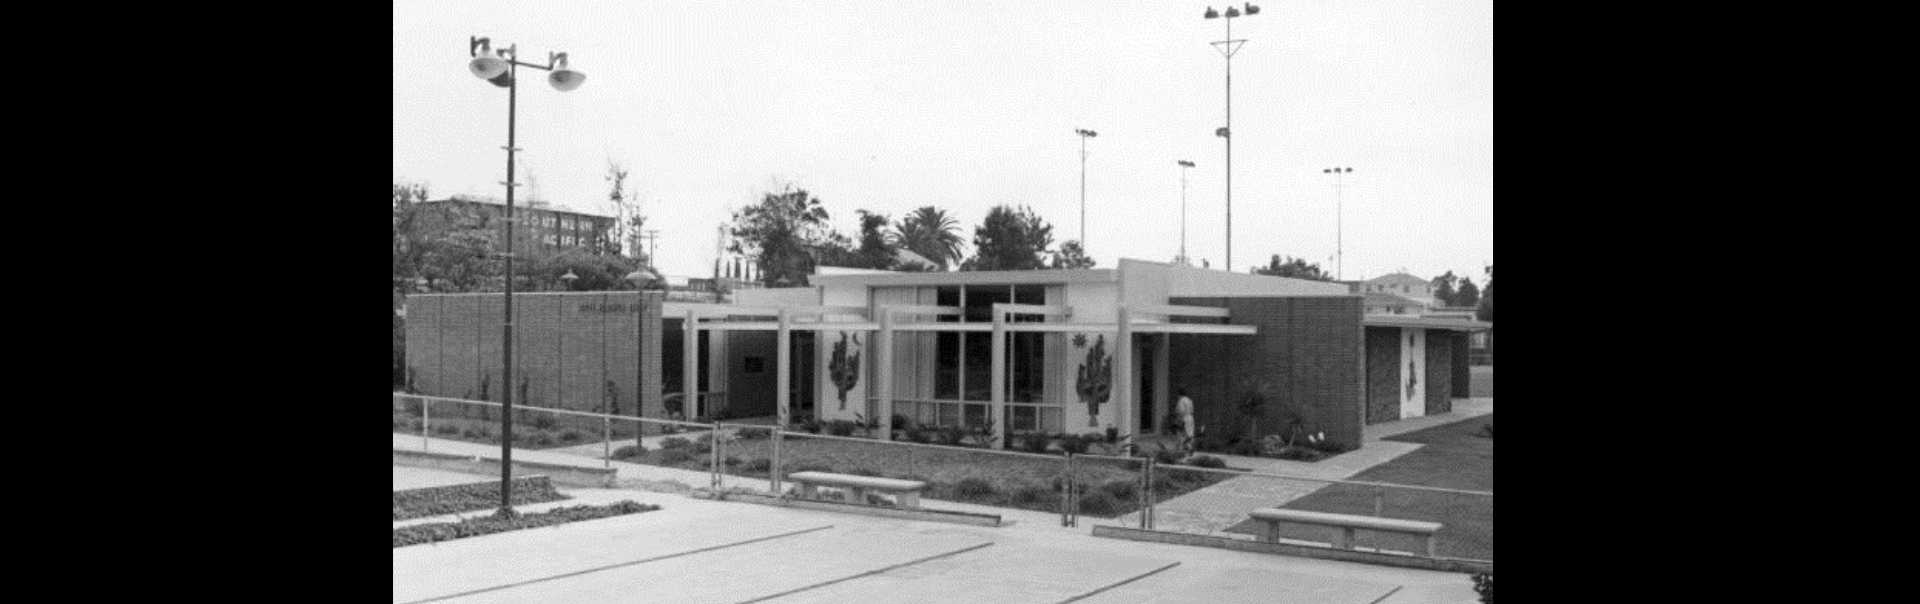 El Segundo Joselyn Center 1966